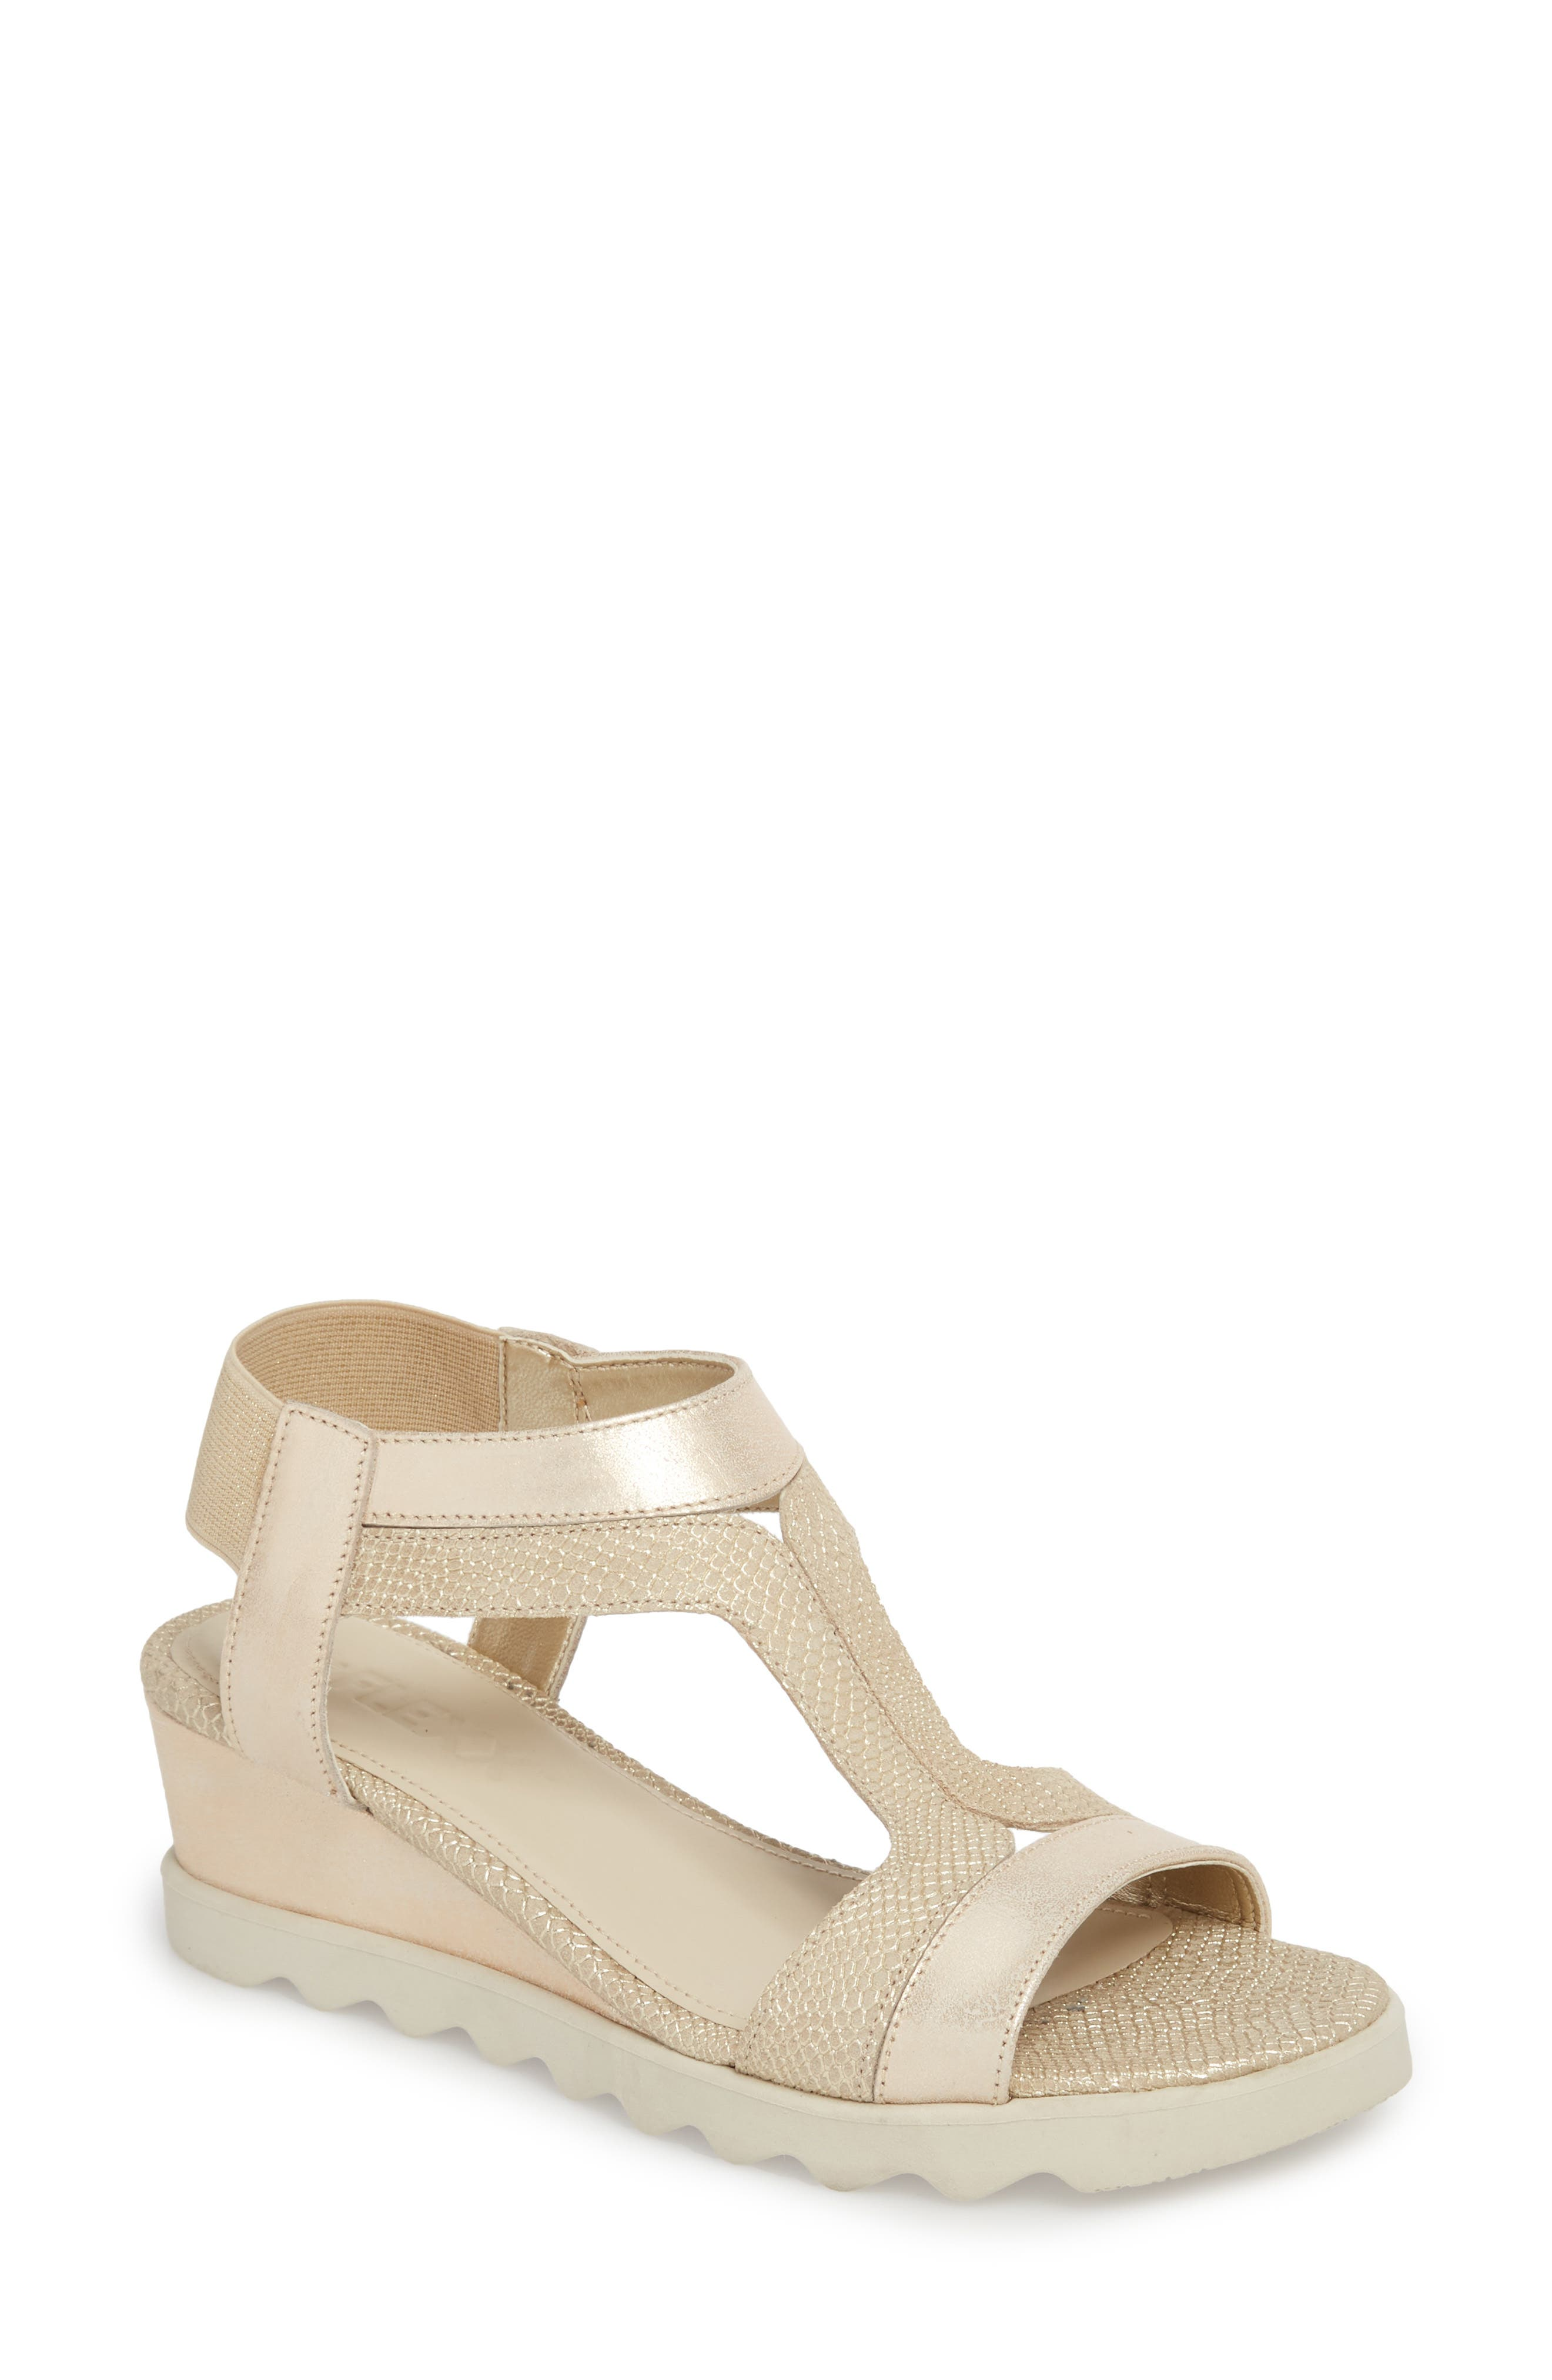 Give A Hoot Wedge Sandal,                         Main,                         color, Gold Leather